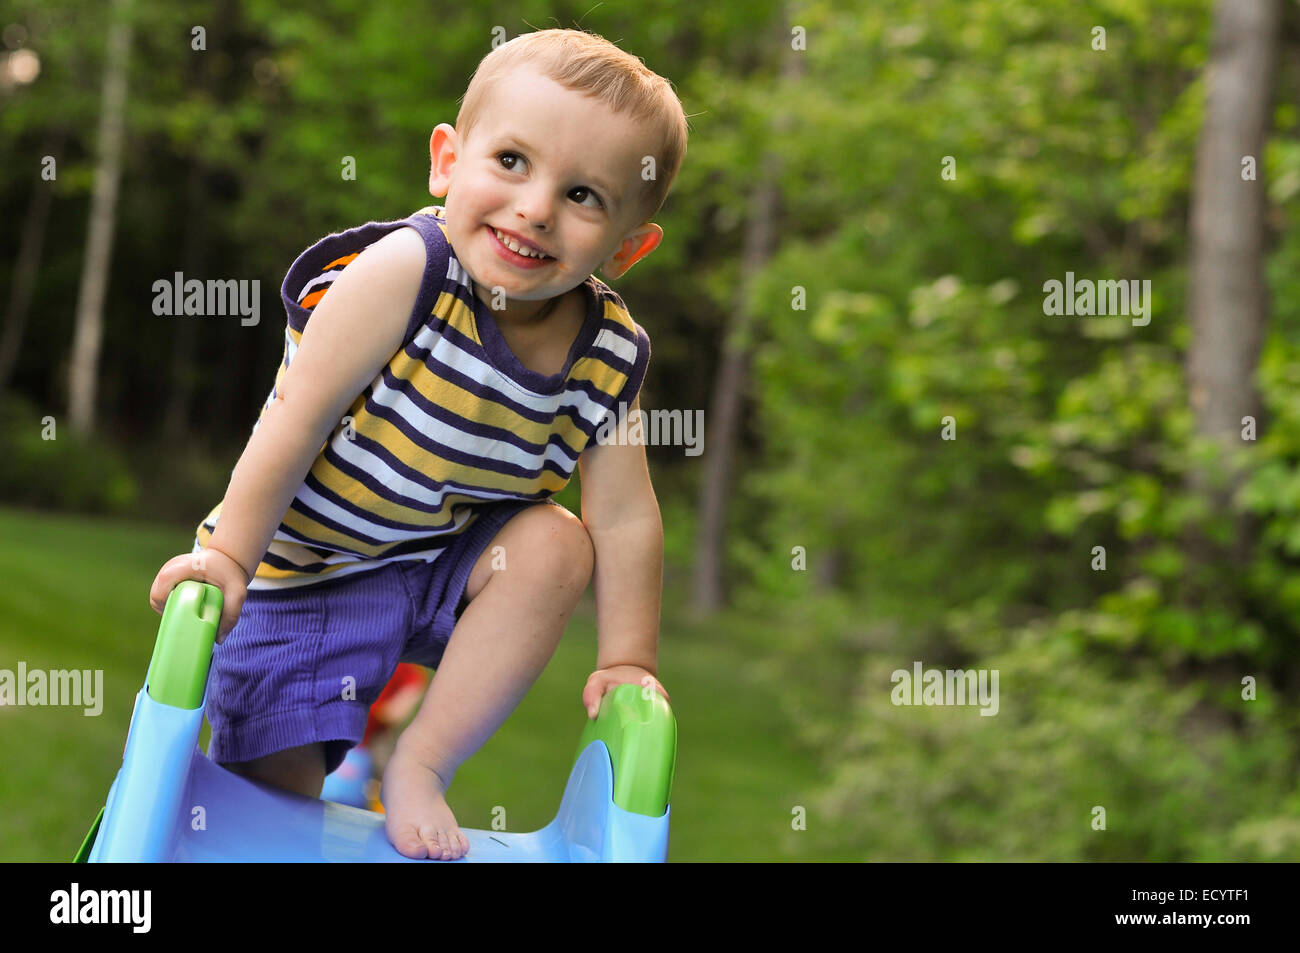 A toddler boy in a striped tank top plays on a plastic slide in summer. - Stock Image